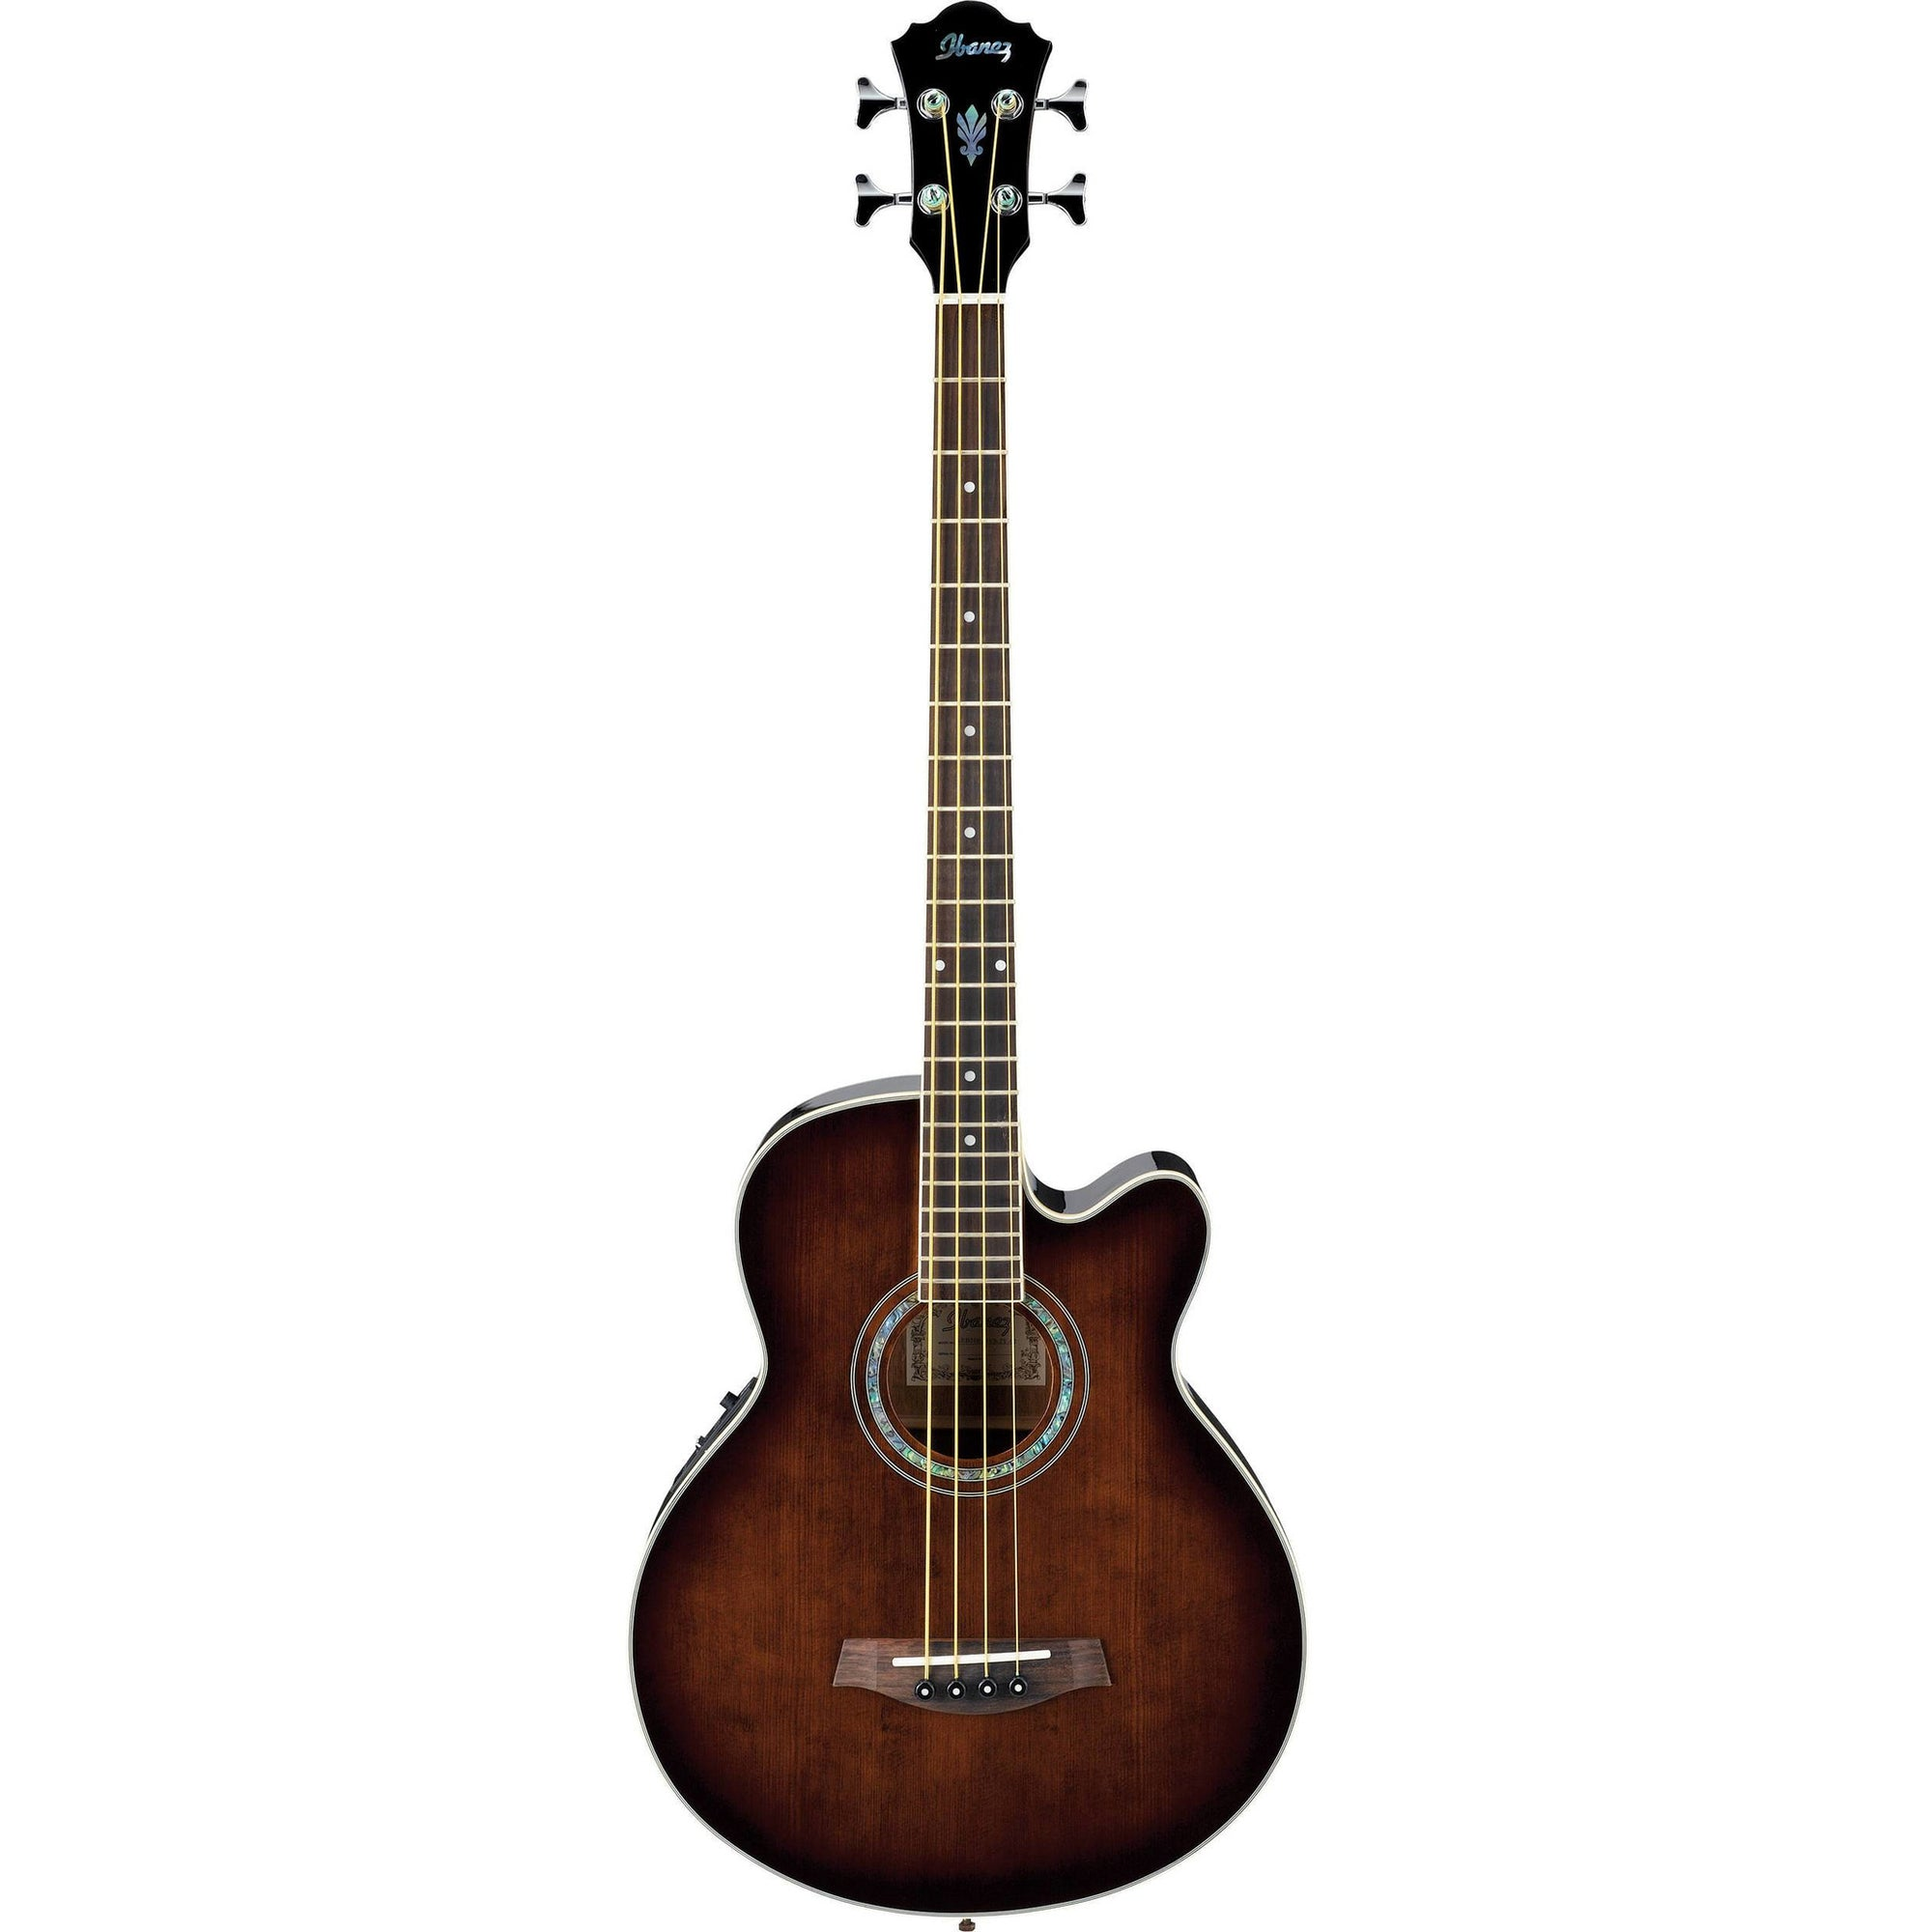 Ibanez AEB10E Acoustic-Electric Bass Guitar - Dark Violin Sunburst